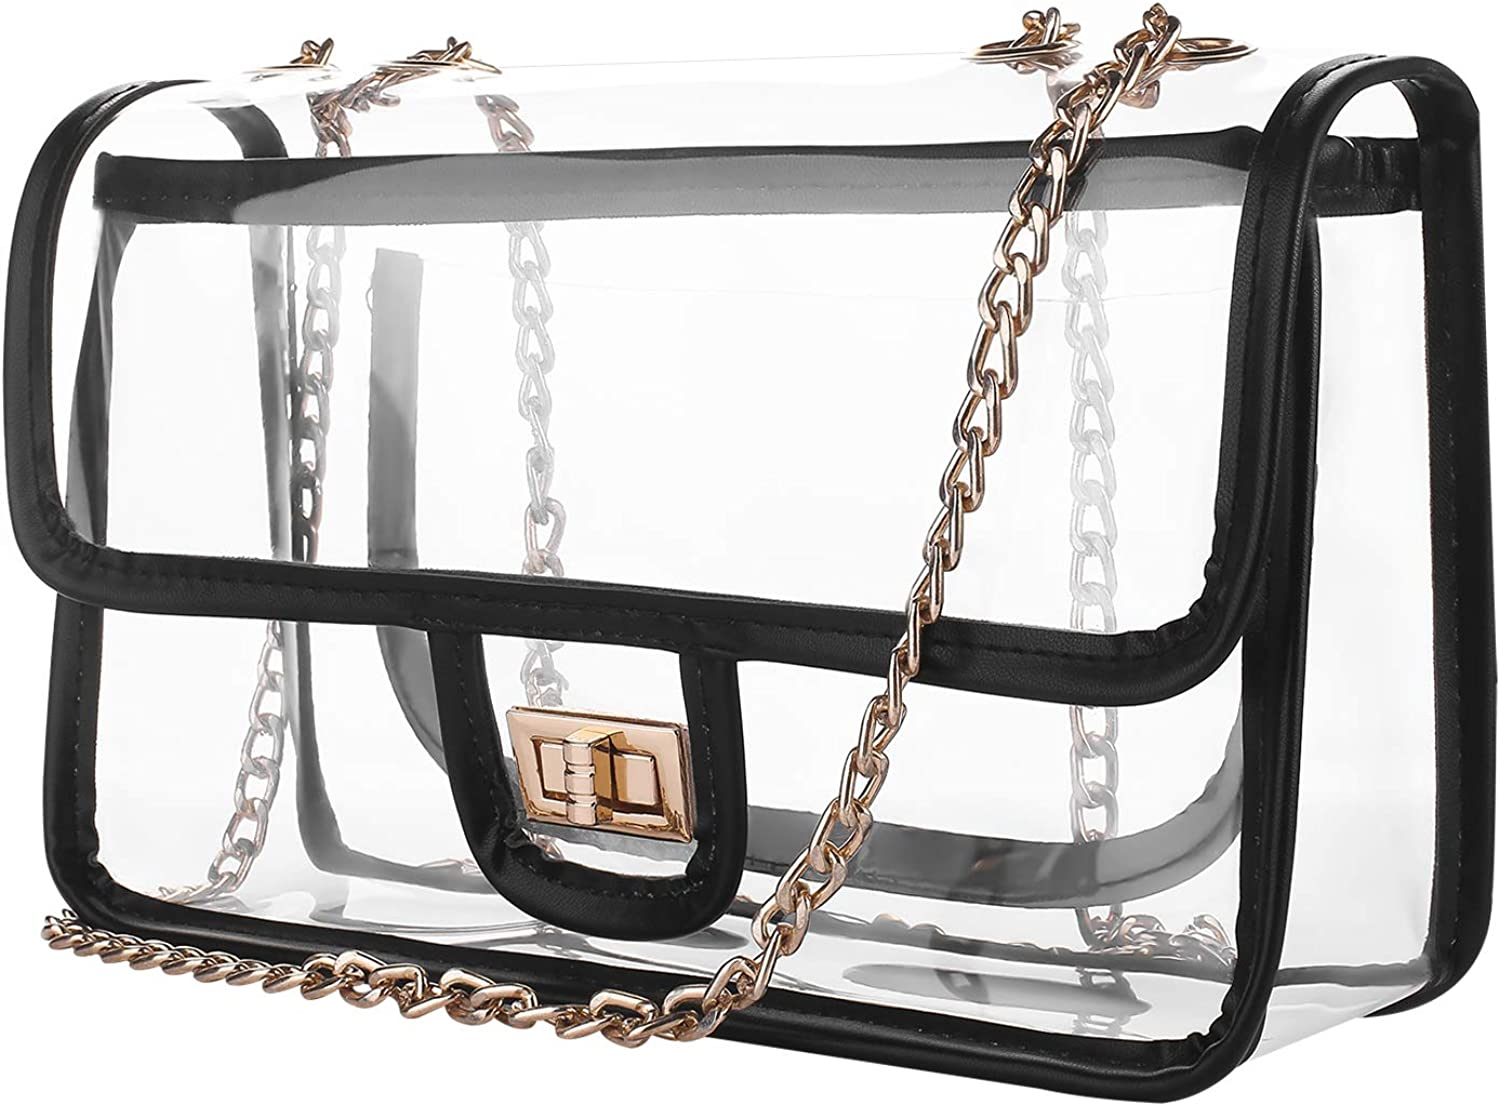 D&S Crossbody Shoulder Clear Bag, NFL and PGA Stadium Approved Transparent Bag for Sporting Events, Work, School Concerts